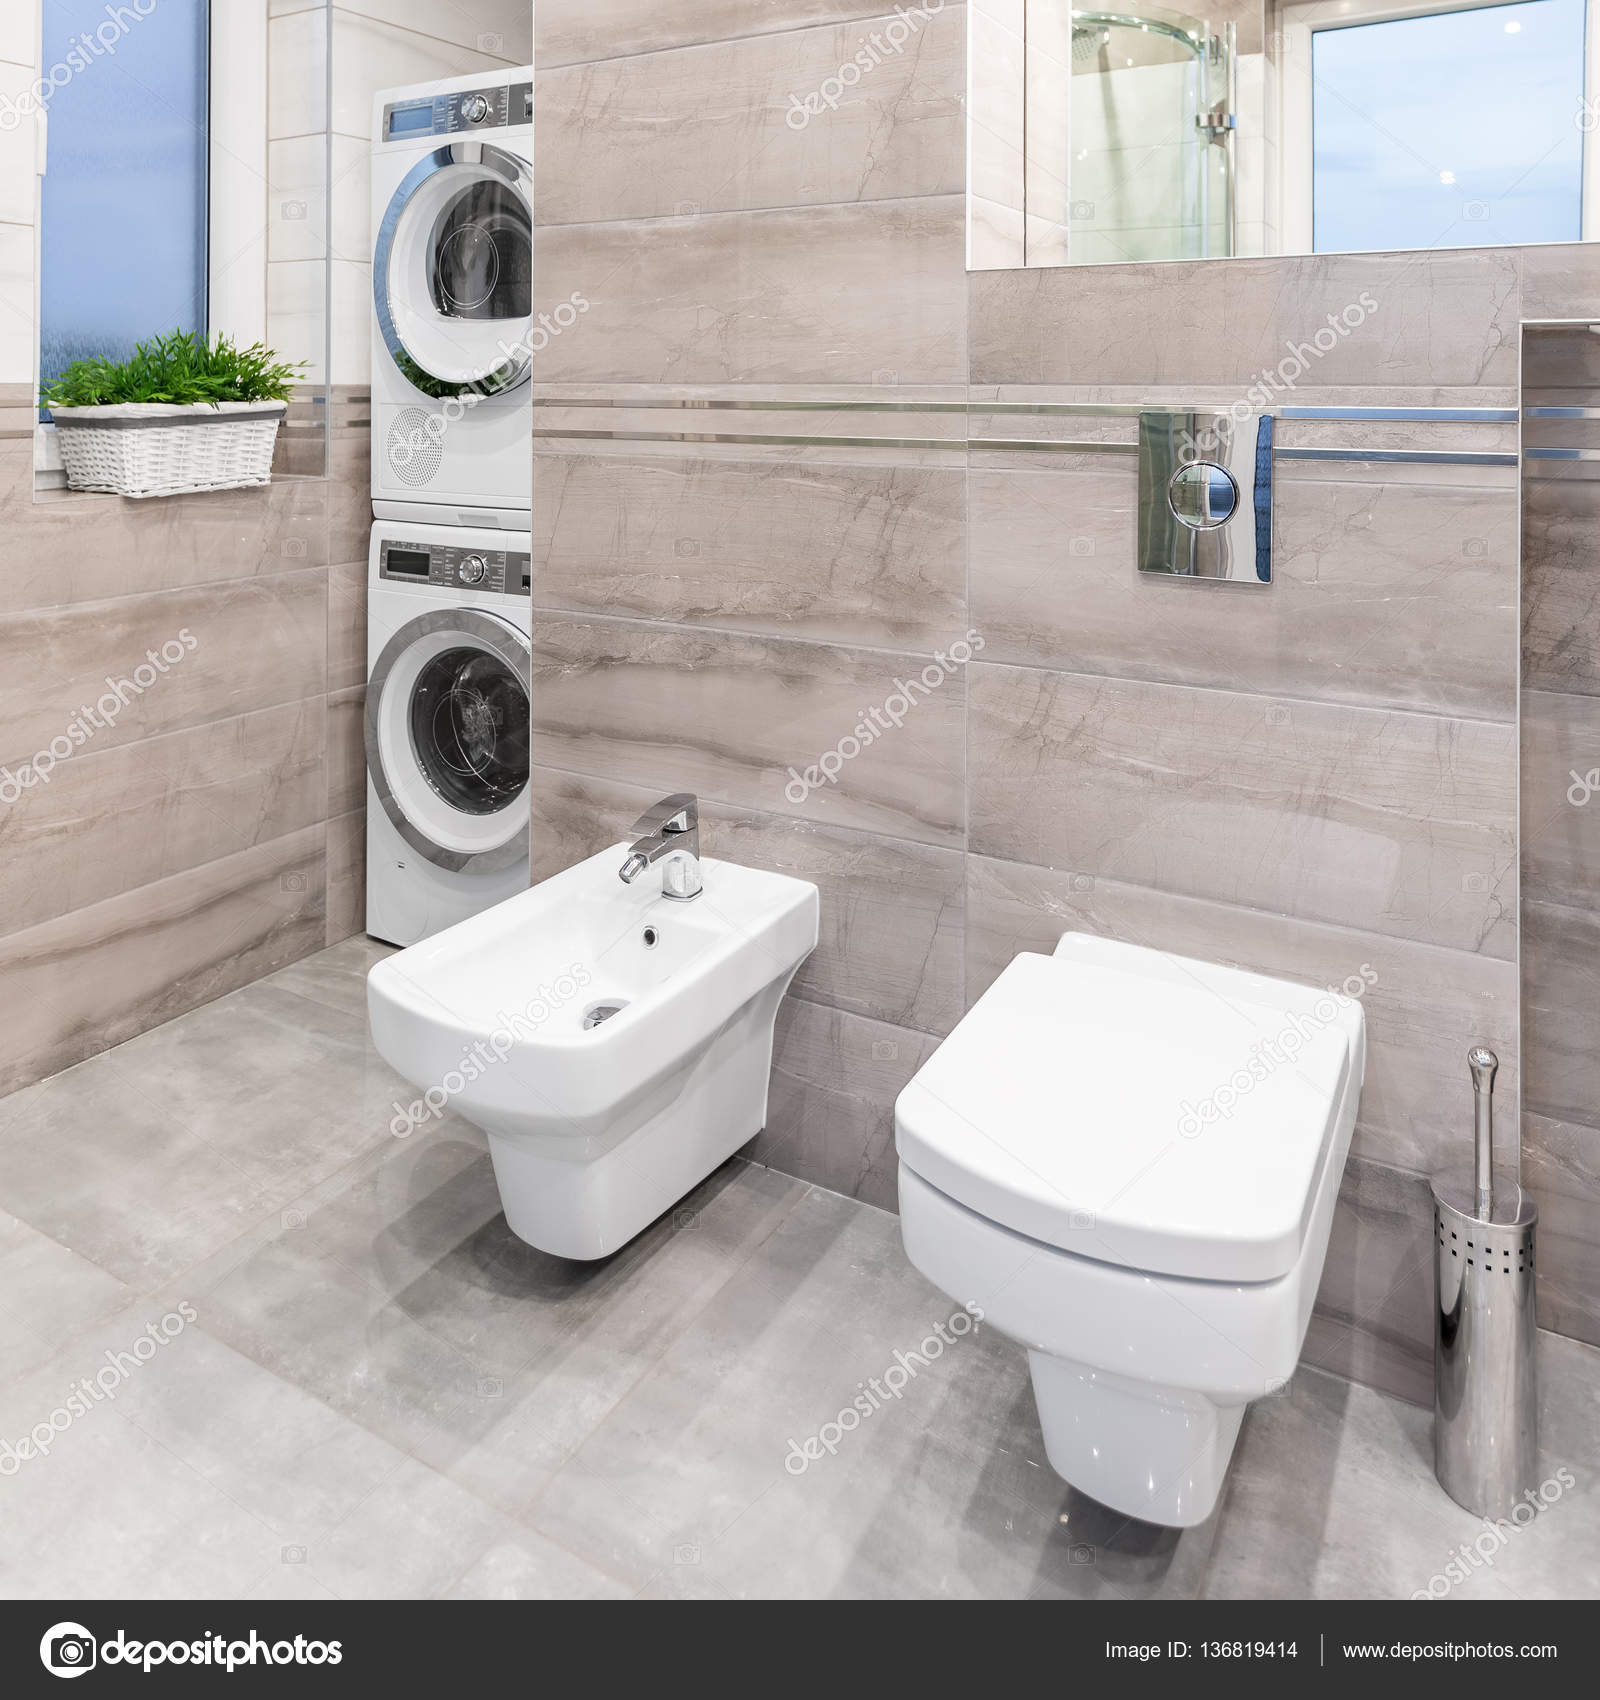 Bathroom With Toilet And Bidet U2014 Stock Photo